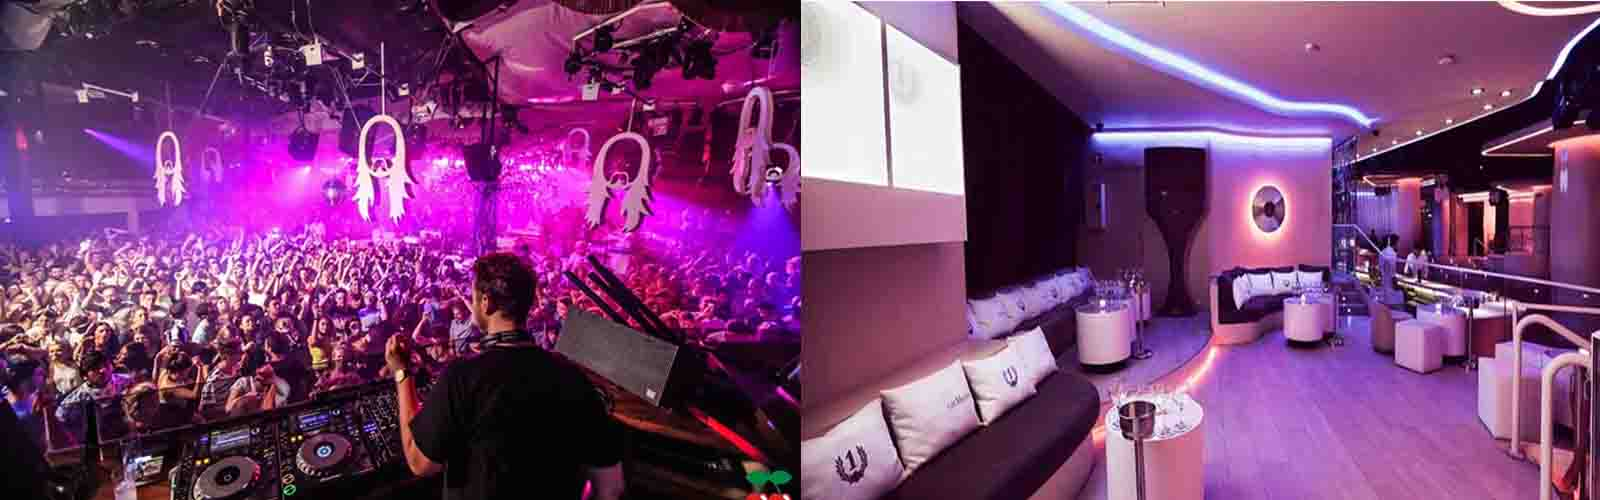 Come party at this great Nightclub Pacha Barcelona